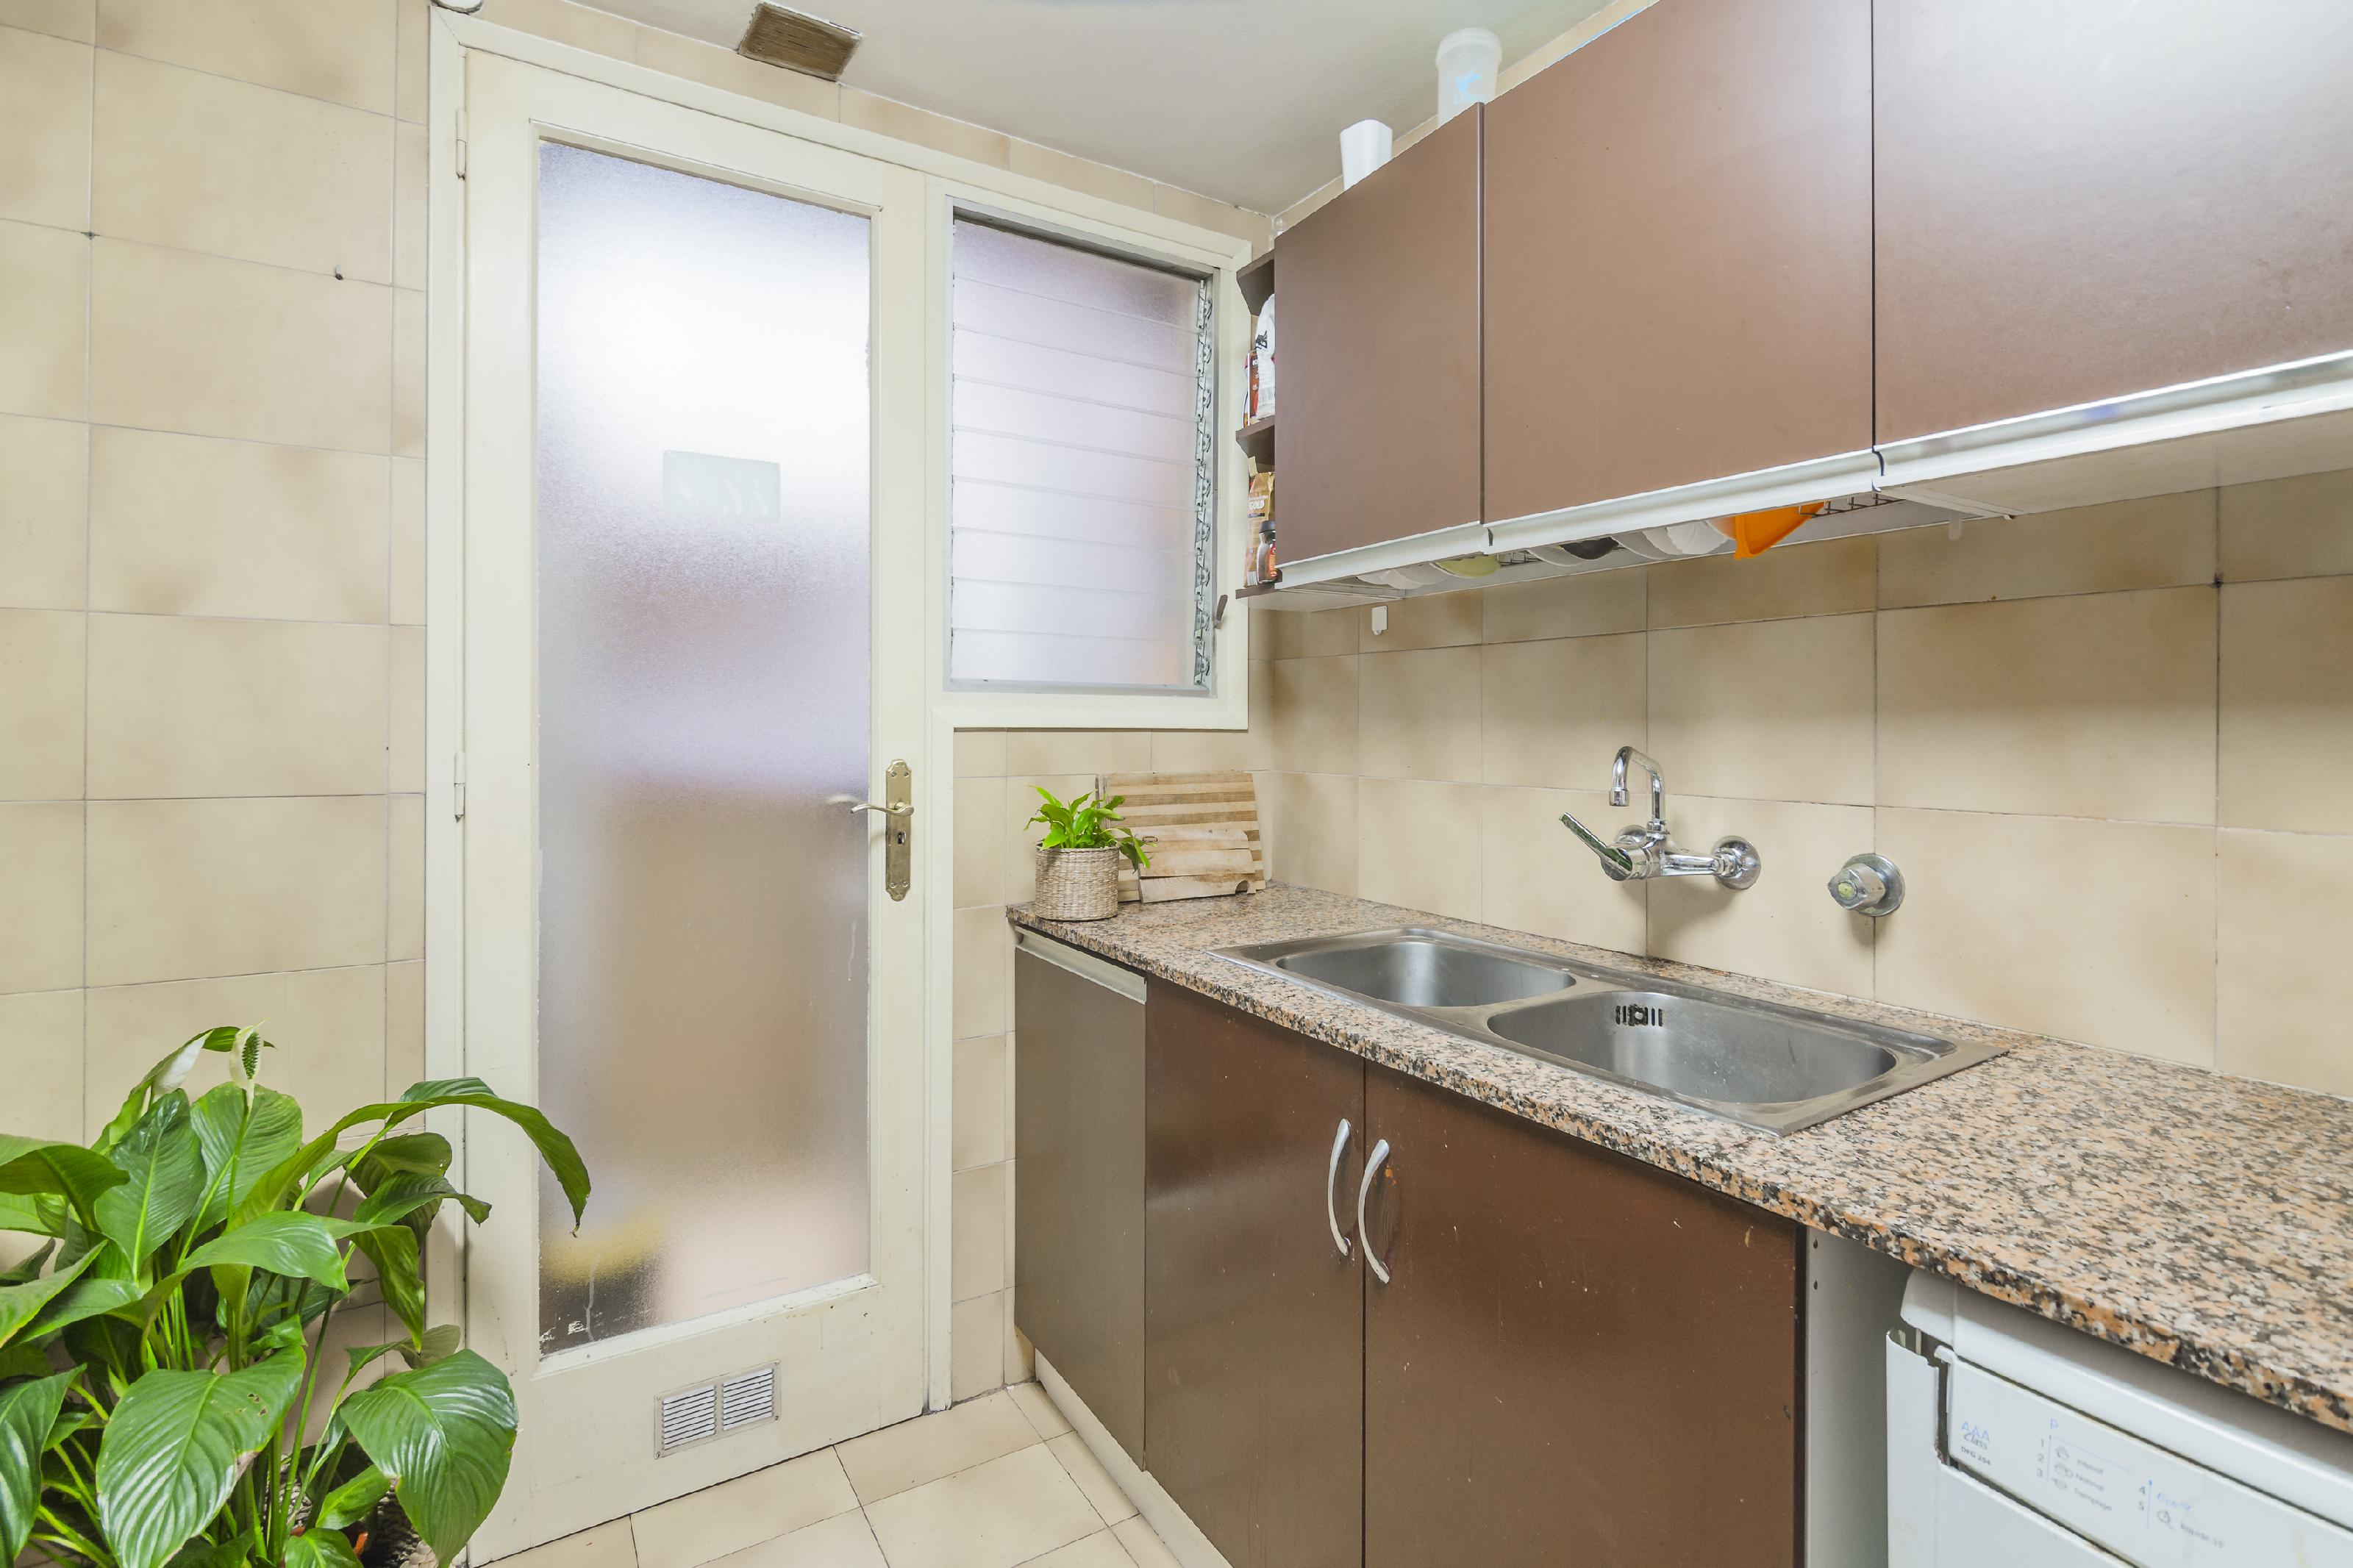 239426 Flat for sale in Les Corts, Les Corts 19